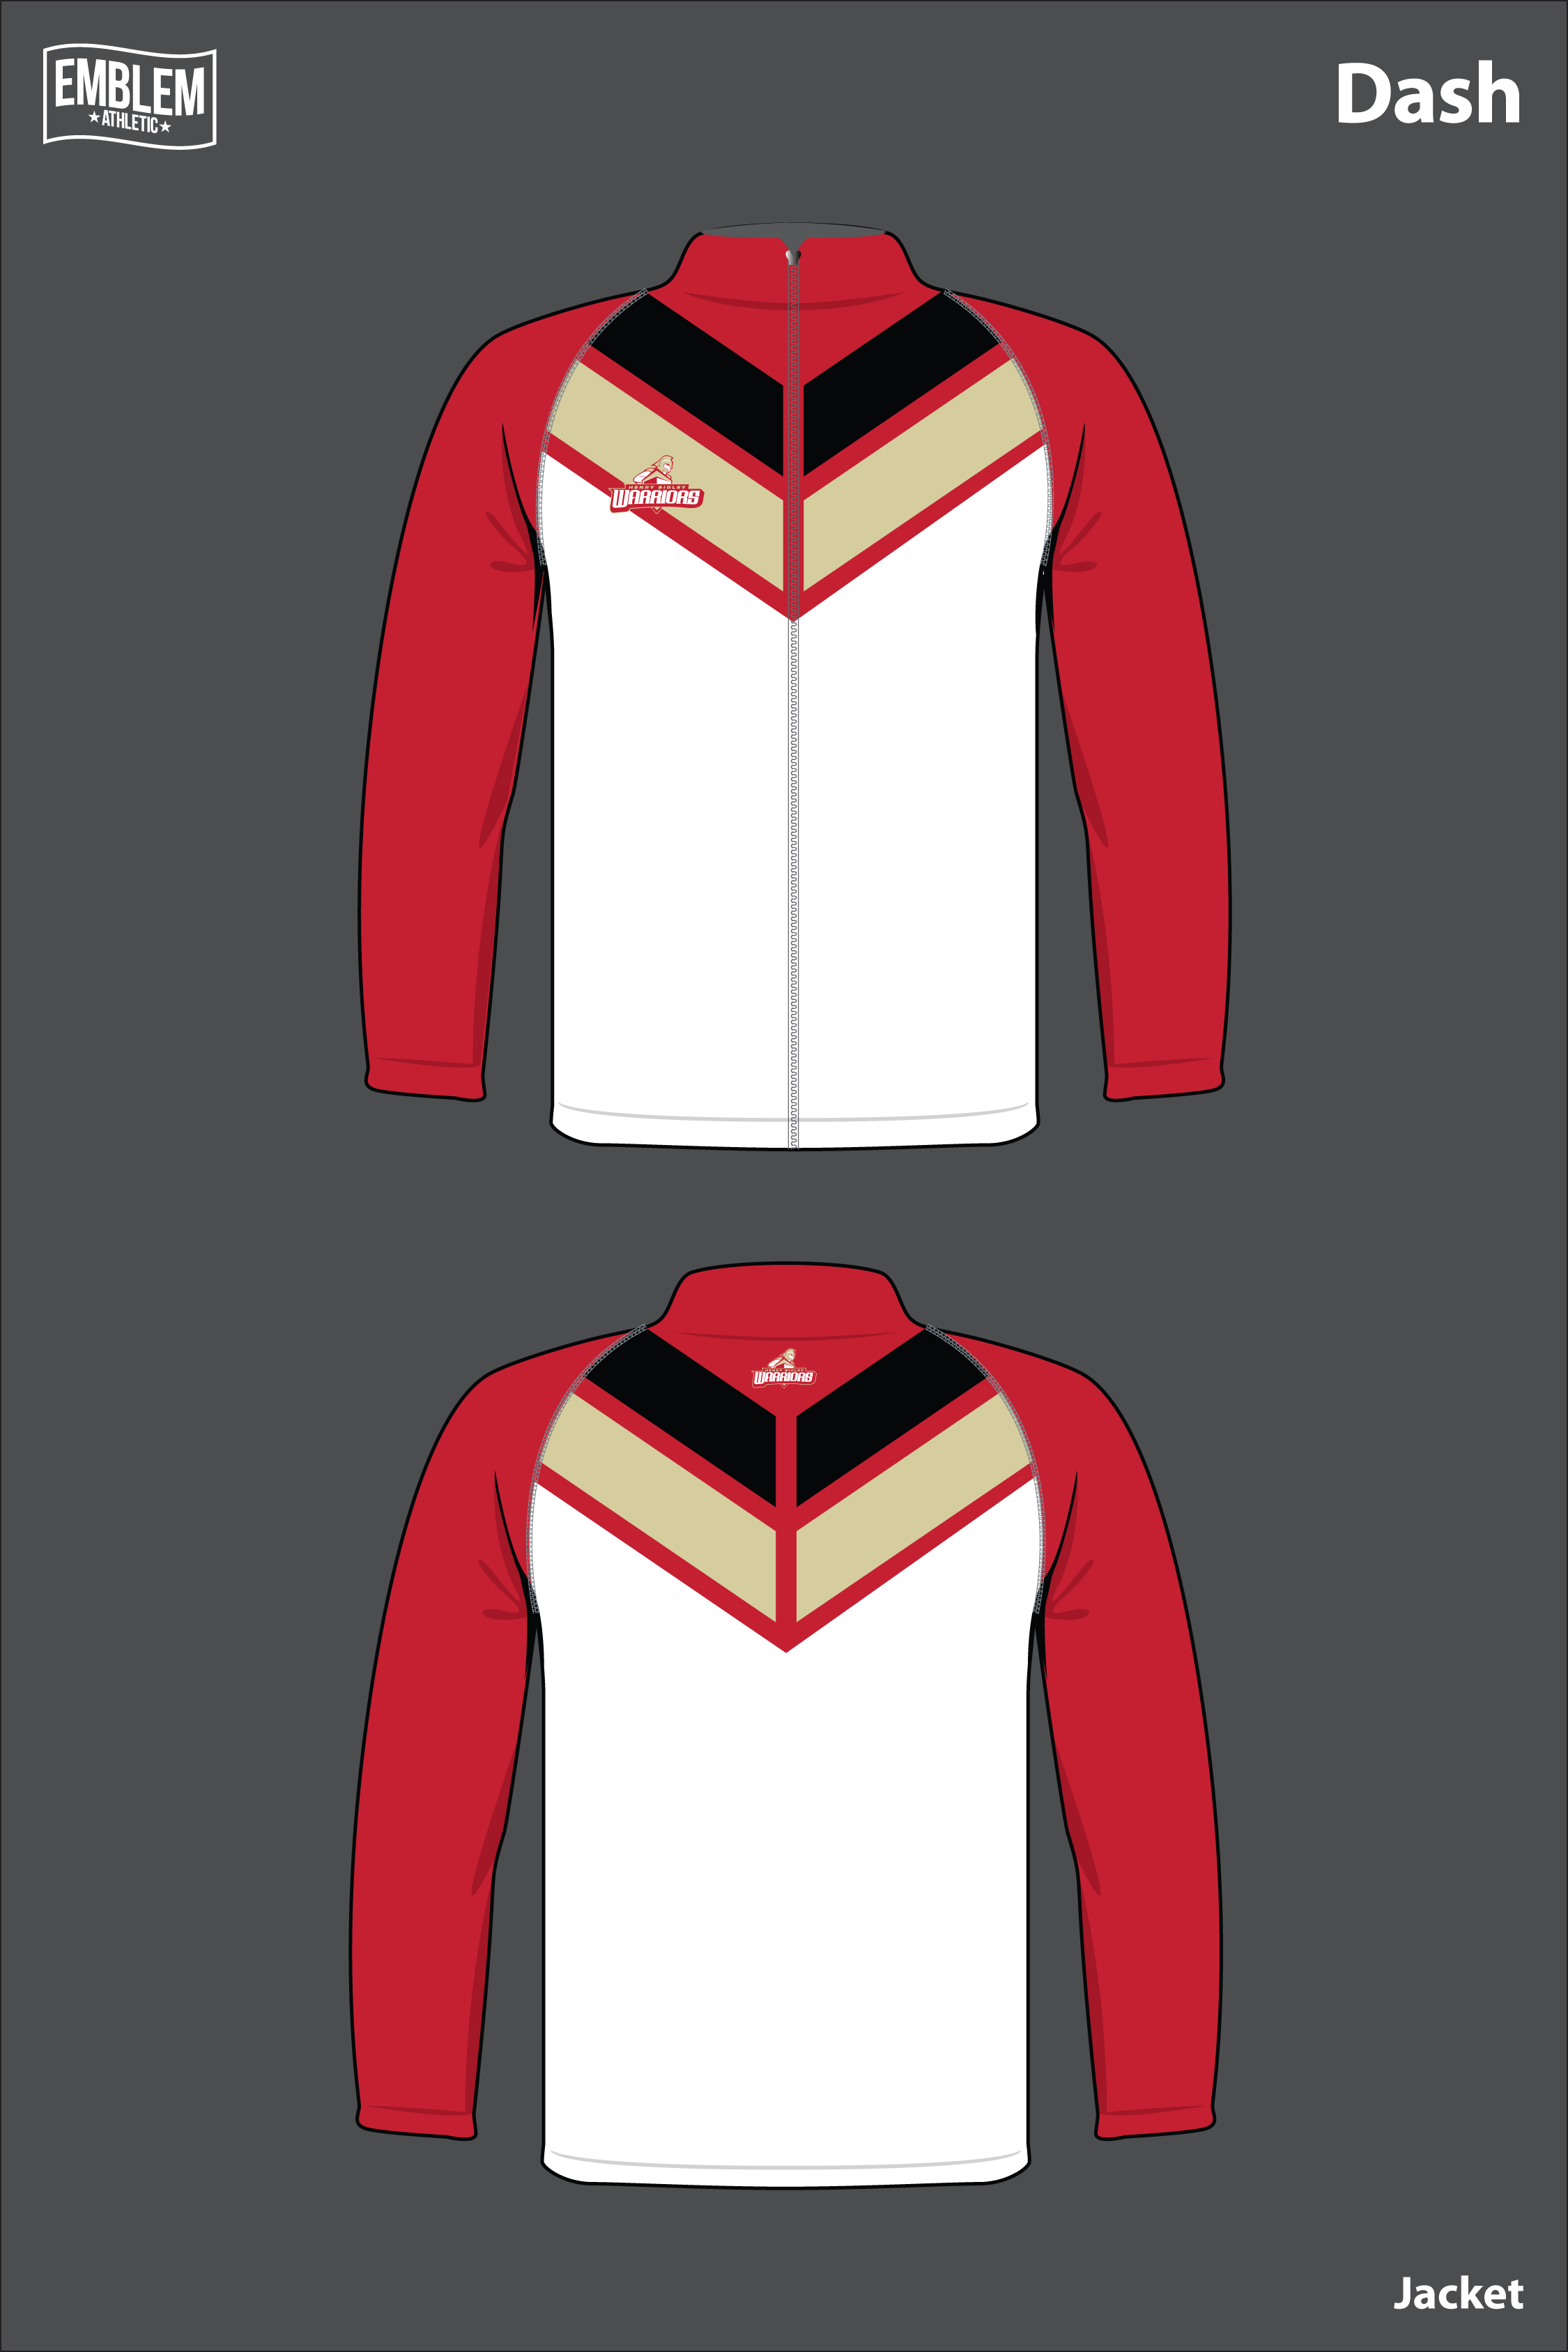 Emblem-Jacket-Dash-01.png